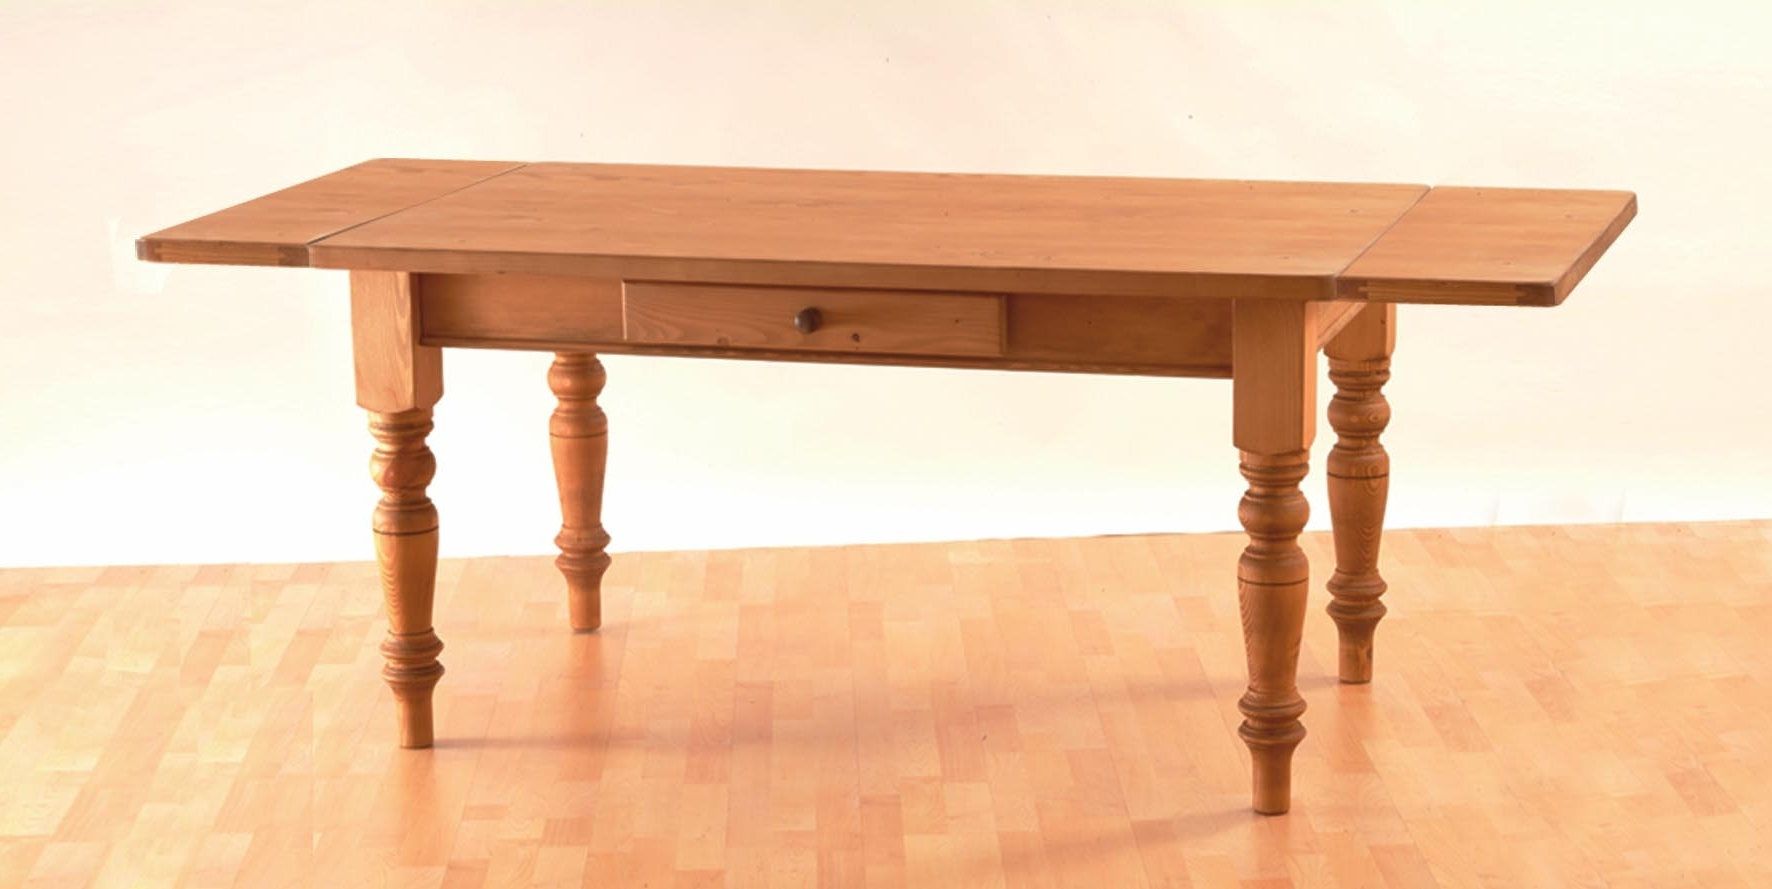 Mottisfont Waxed Pine 7Ft X 3Ft Dining Table Pertaining To Popular 3Ft Dining Tables (View 19 of 25)